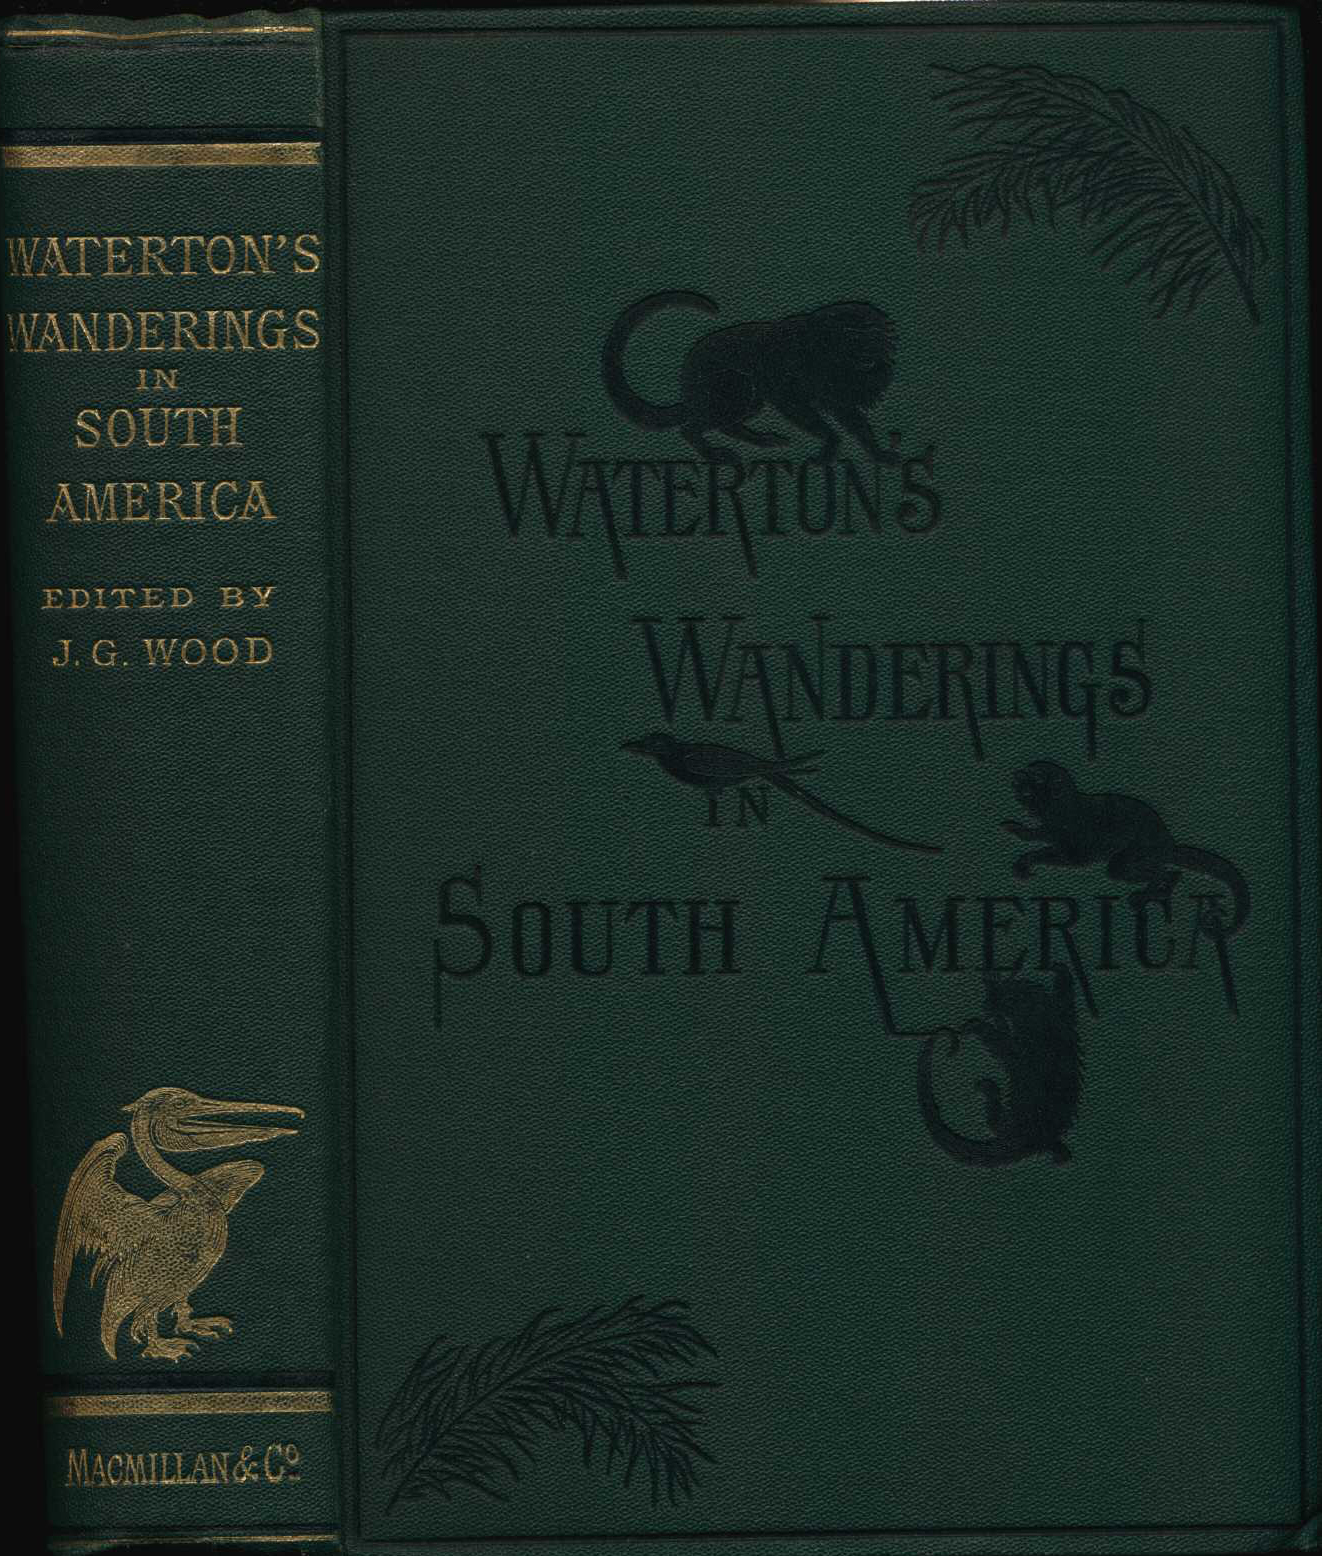 Charles Waterton. Wanderings in South America, the North-west of the United States and the Antilles, in the years 1812, 1816, 1820, & 1824. New edition. London: Macmillan, 1880.